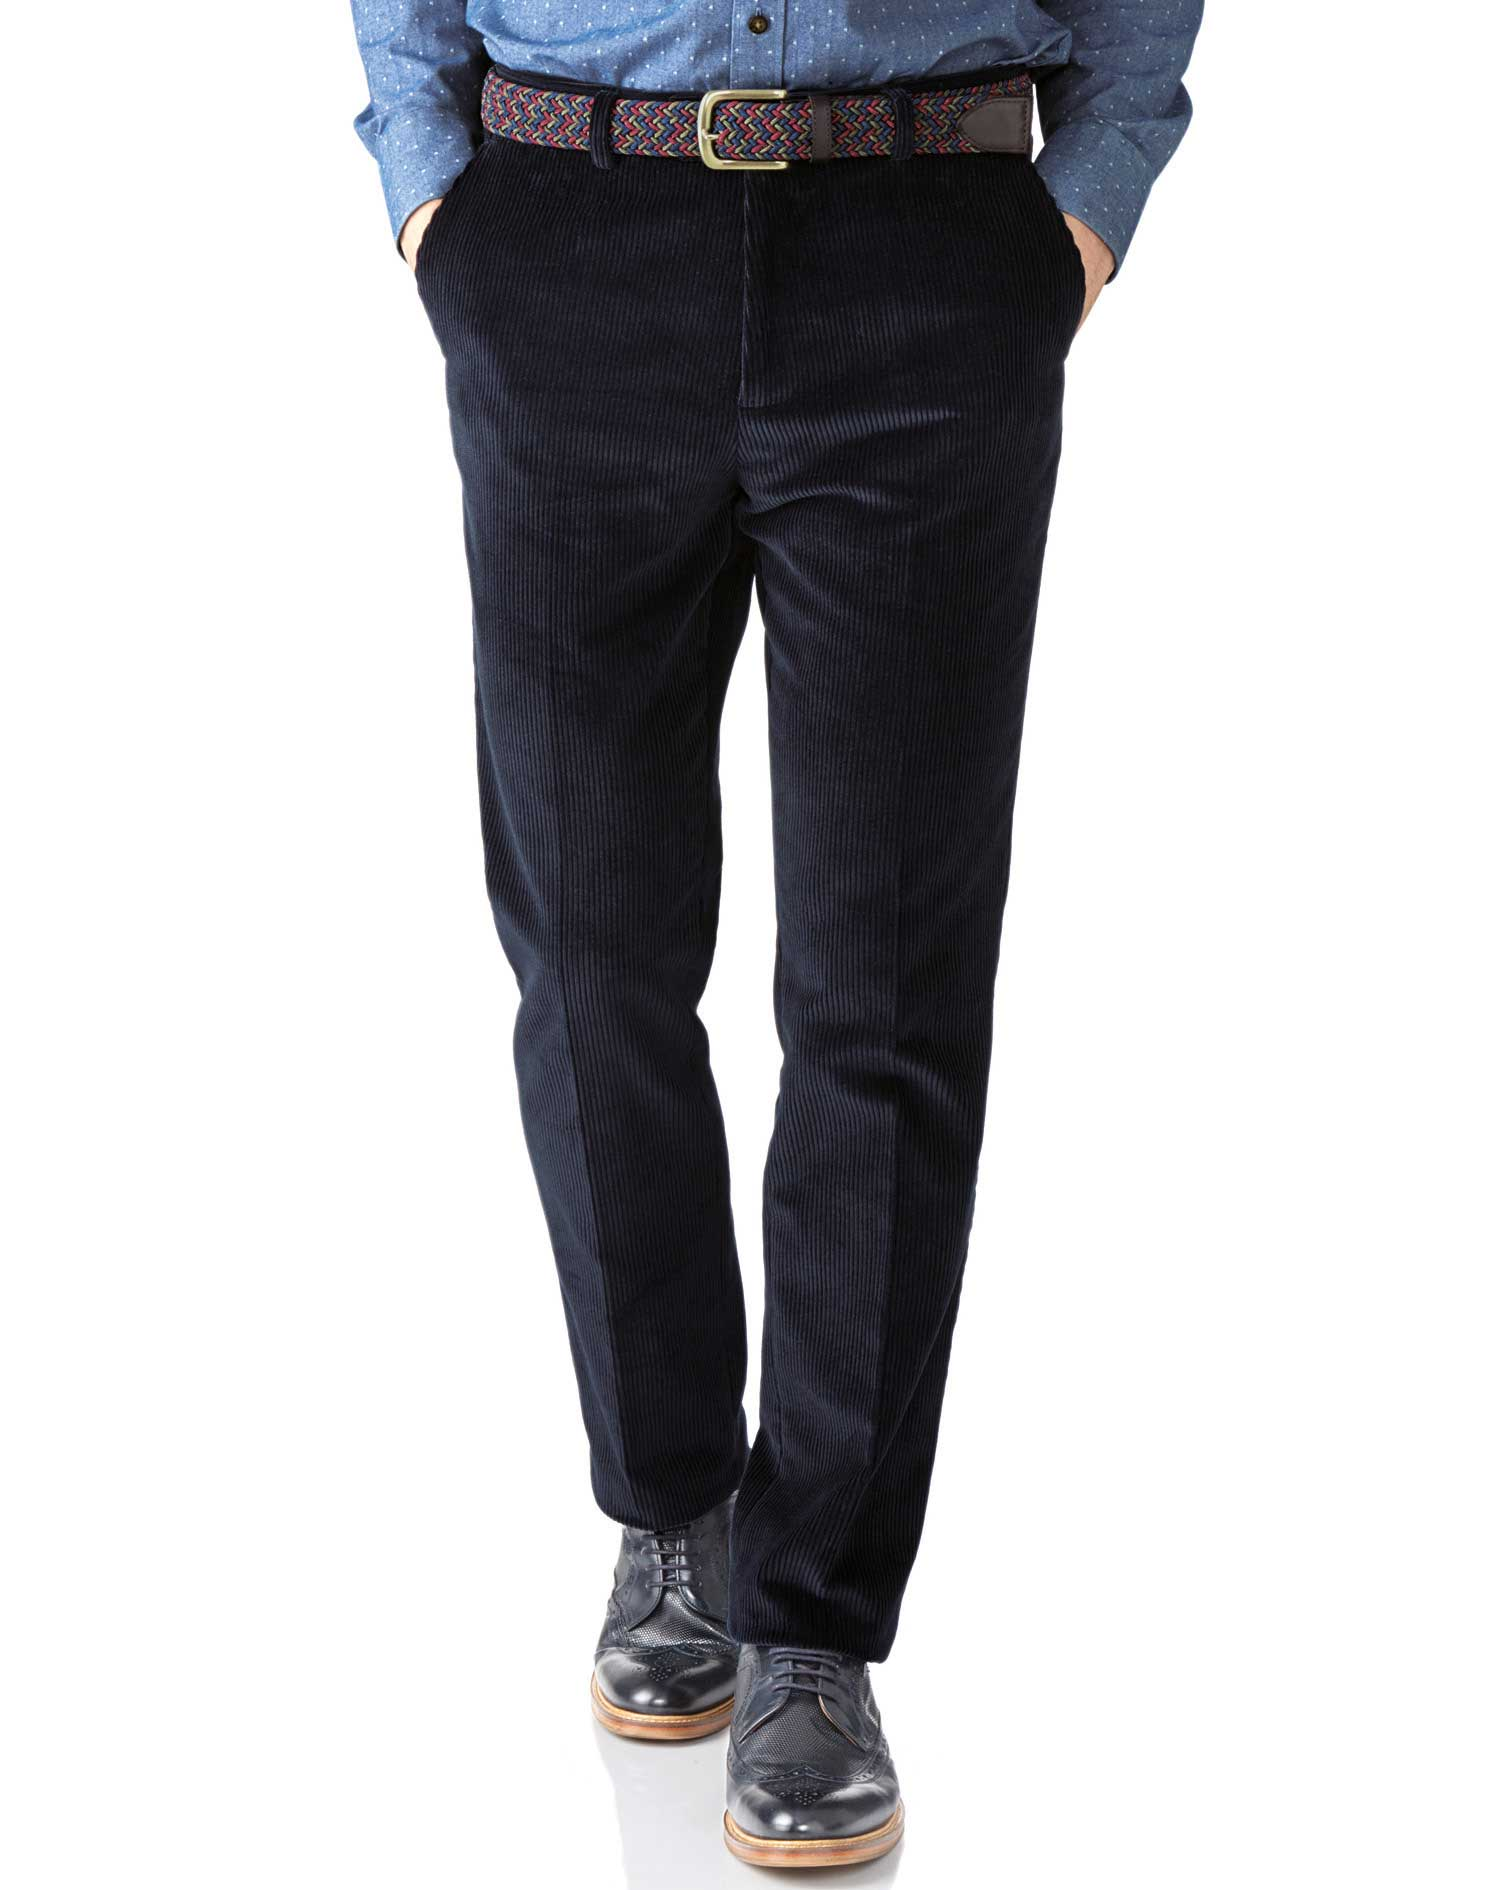 Navy Extra Slim Fit Jumbo Cord Trouser Size W34 L30 by Charles Tyrwhitt